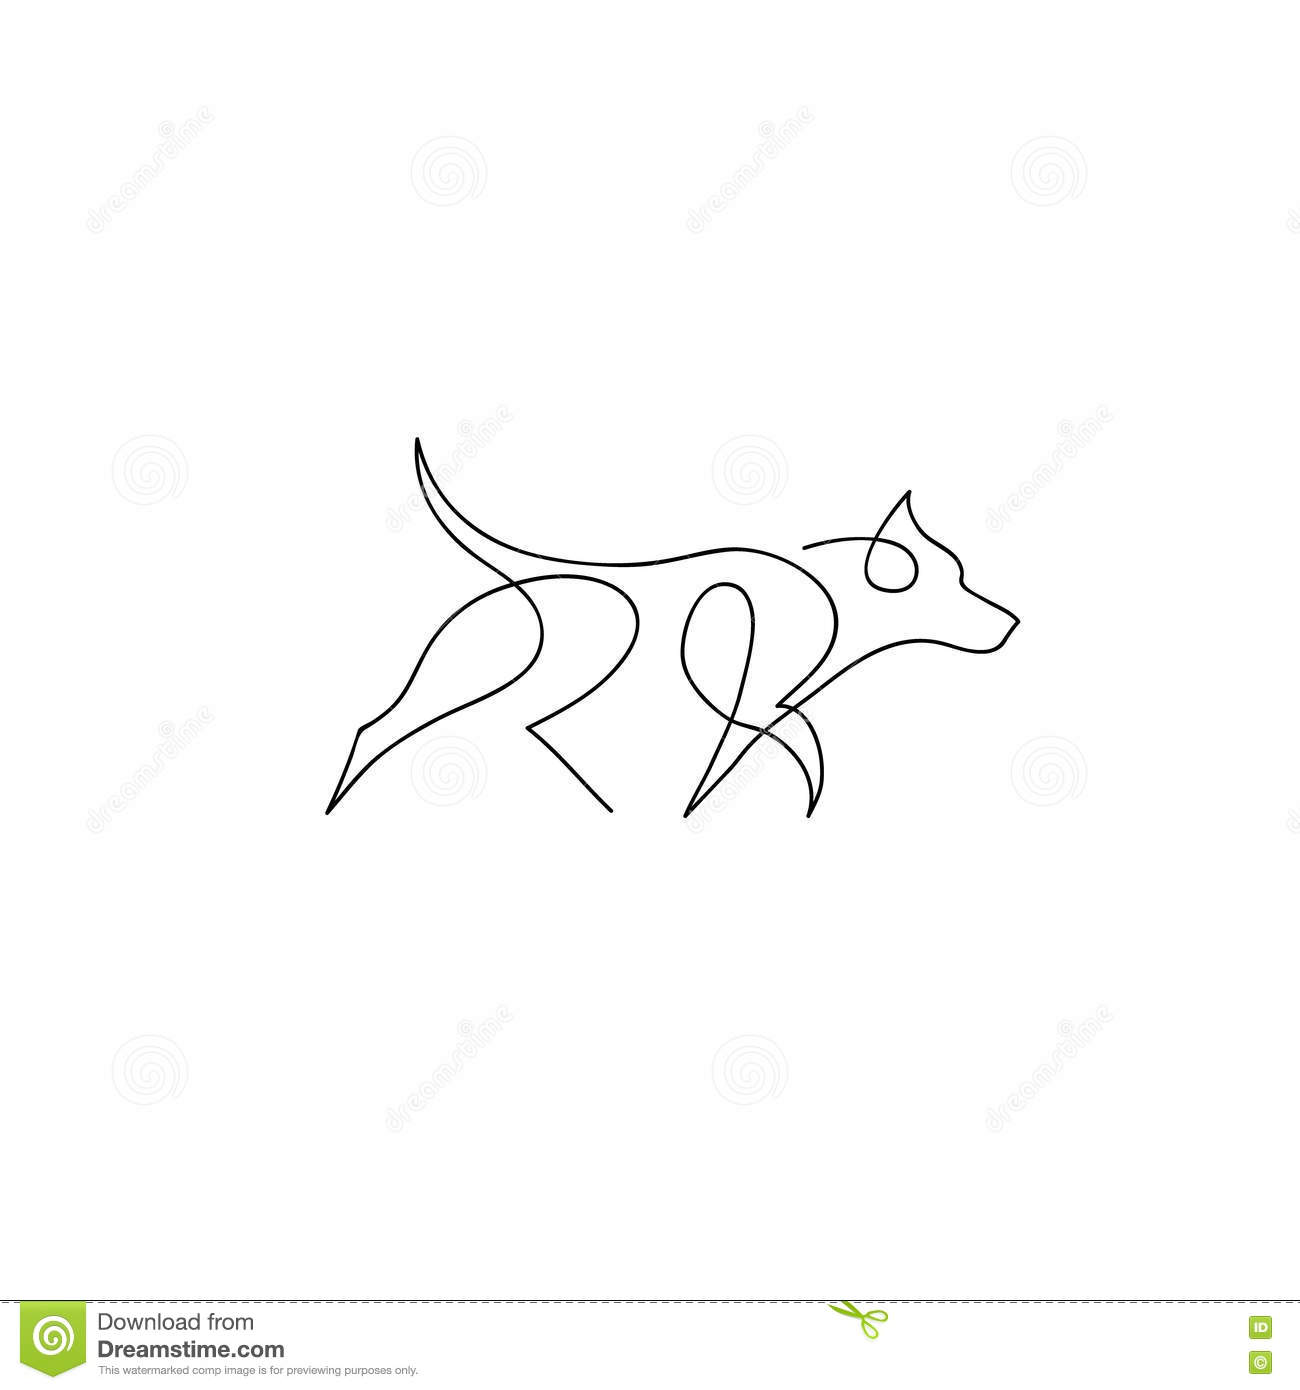 One Line Artwork : One line dog design silhouette german shepherd hand